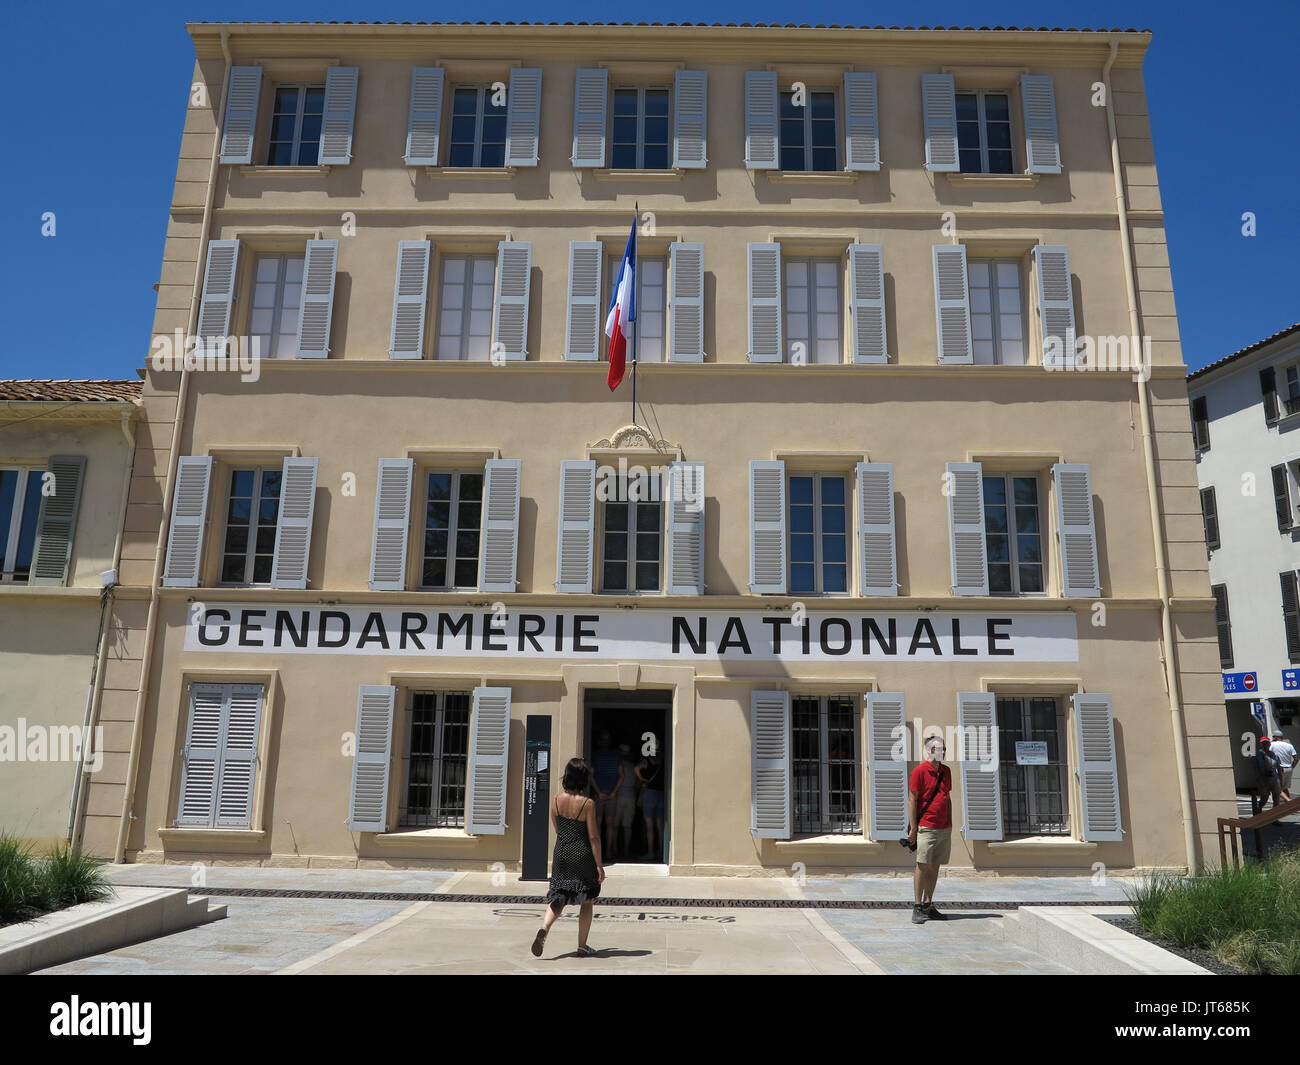 Saint-Tropez (south-eastern France): the famous police station ('gendarmerie') in Place Blanqui, where 'Le - Stock Image